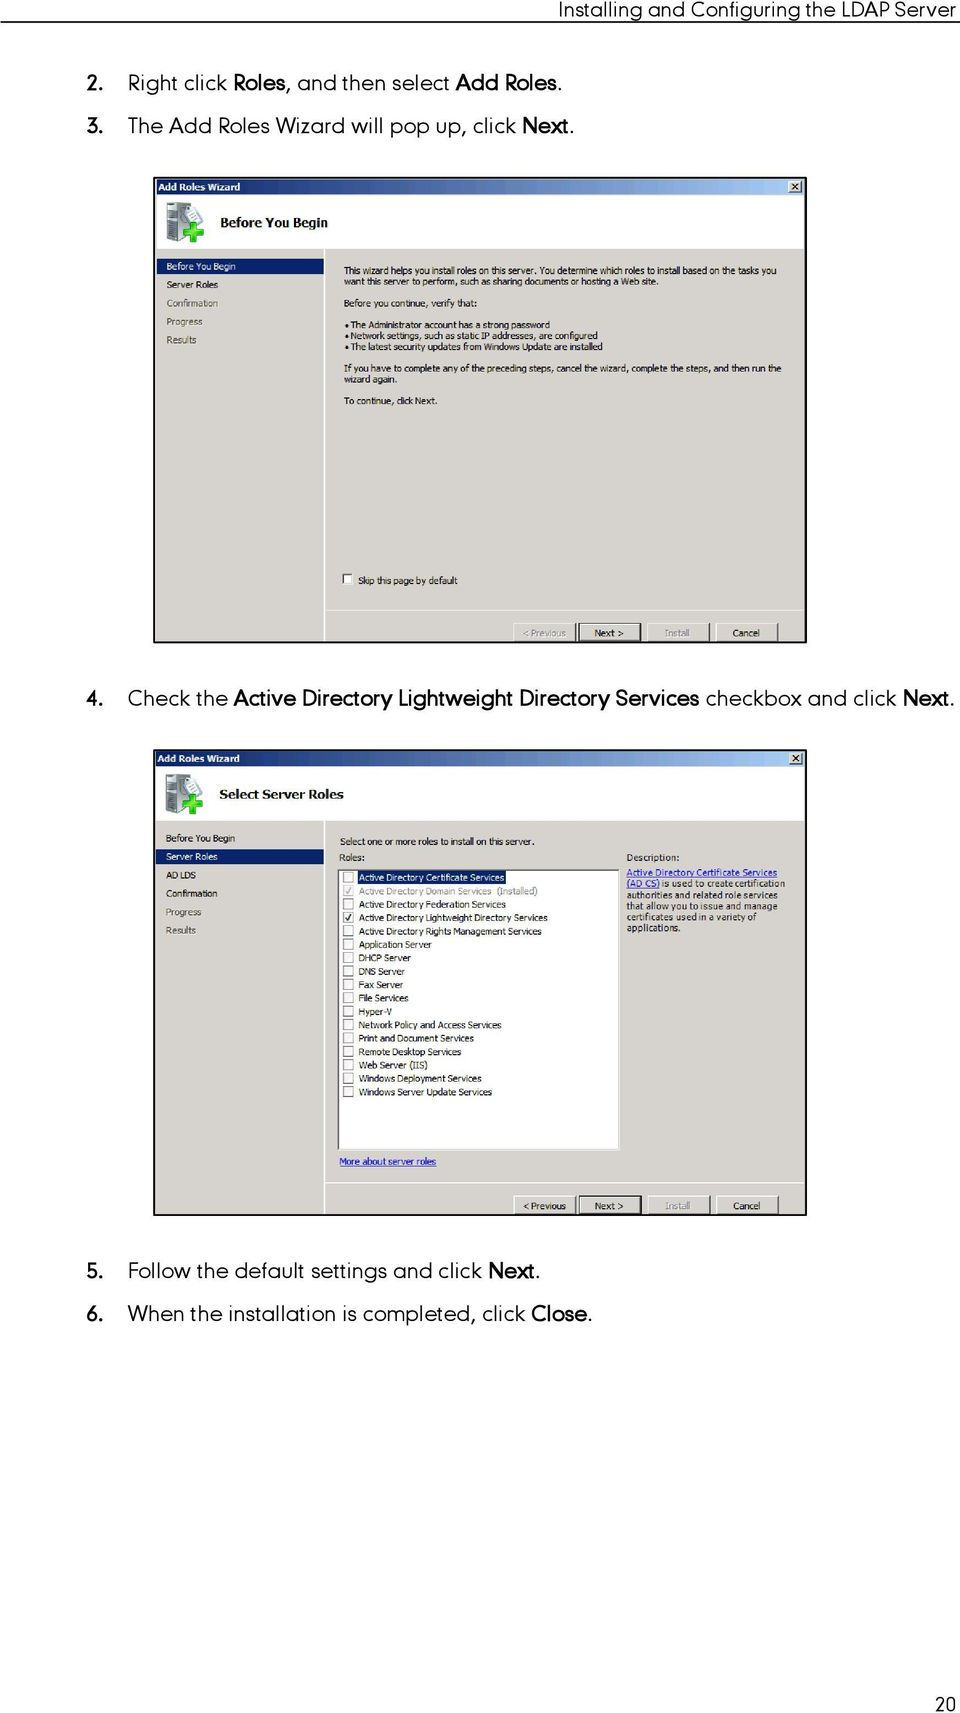 Check the Active Directory Lightweight Directory Services checkbox and